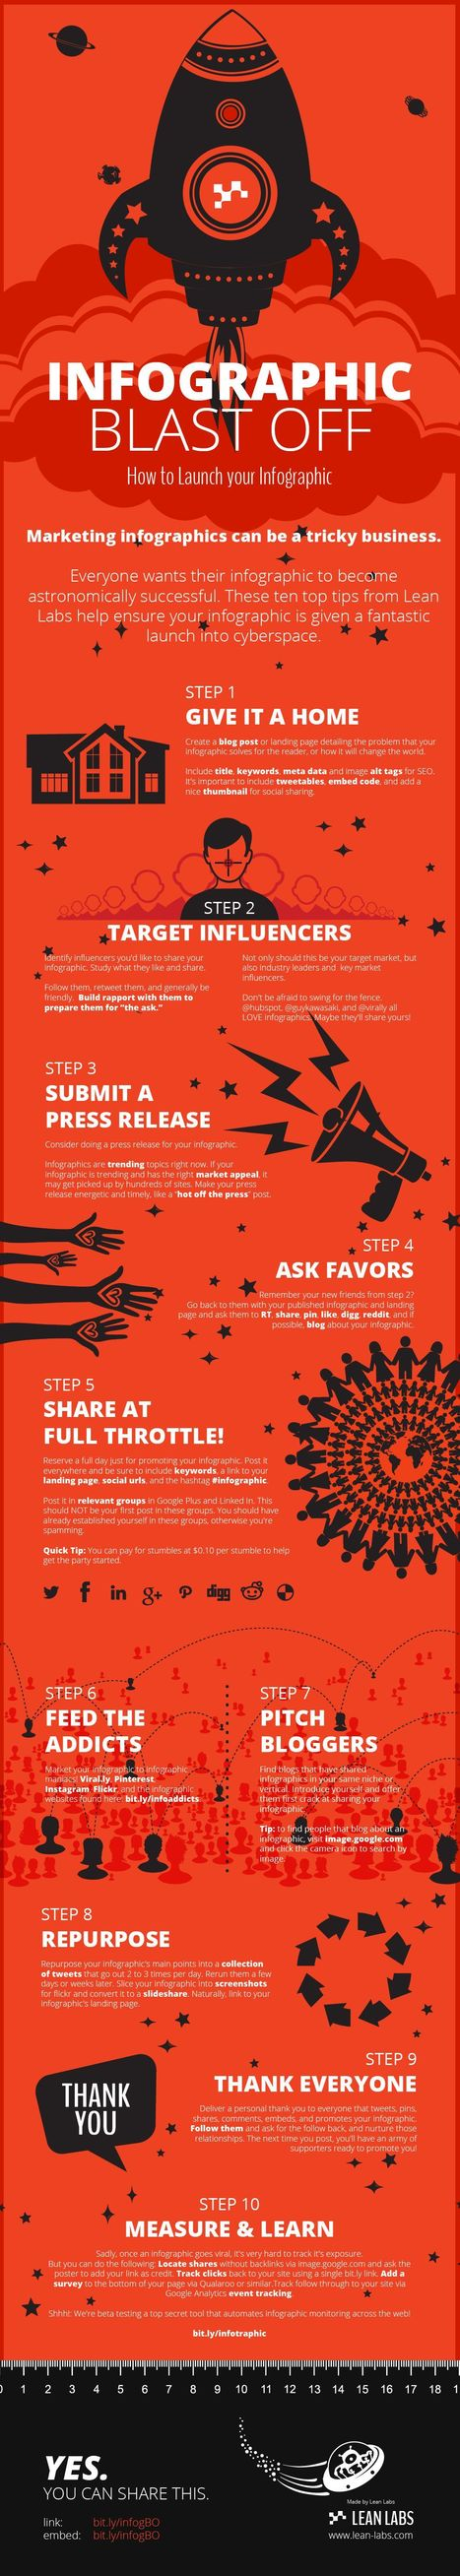 The Infographic Blast Off [infographic] | Everything Marketing You Can Think Of | Scoop.it